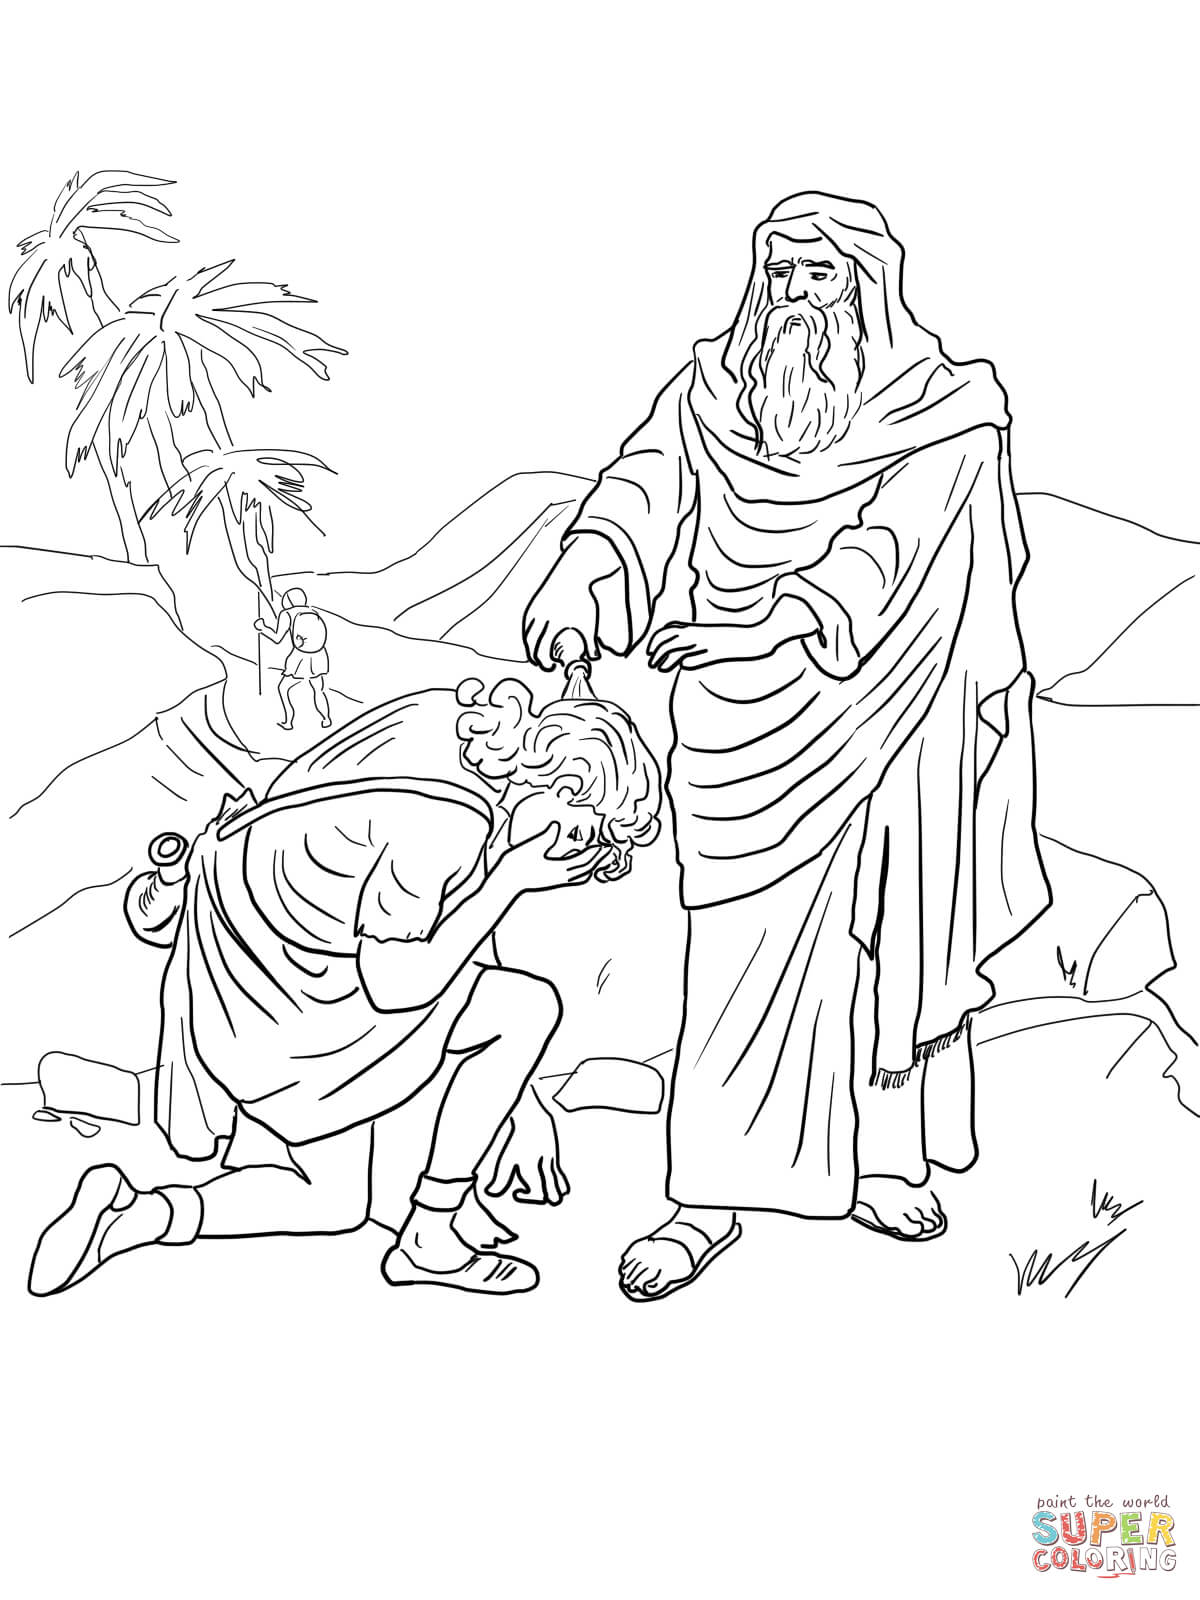 King Saul Coloring Page Coloring Home King Saul Coloring Page